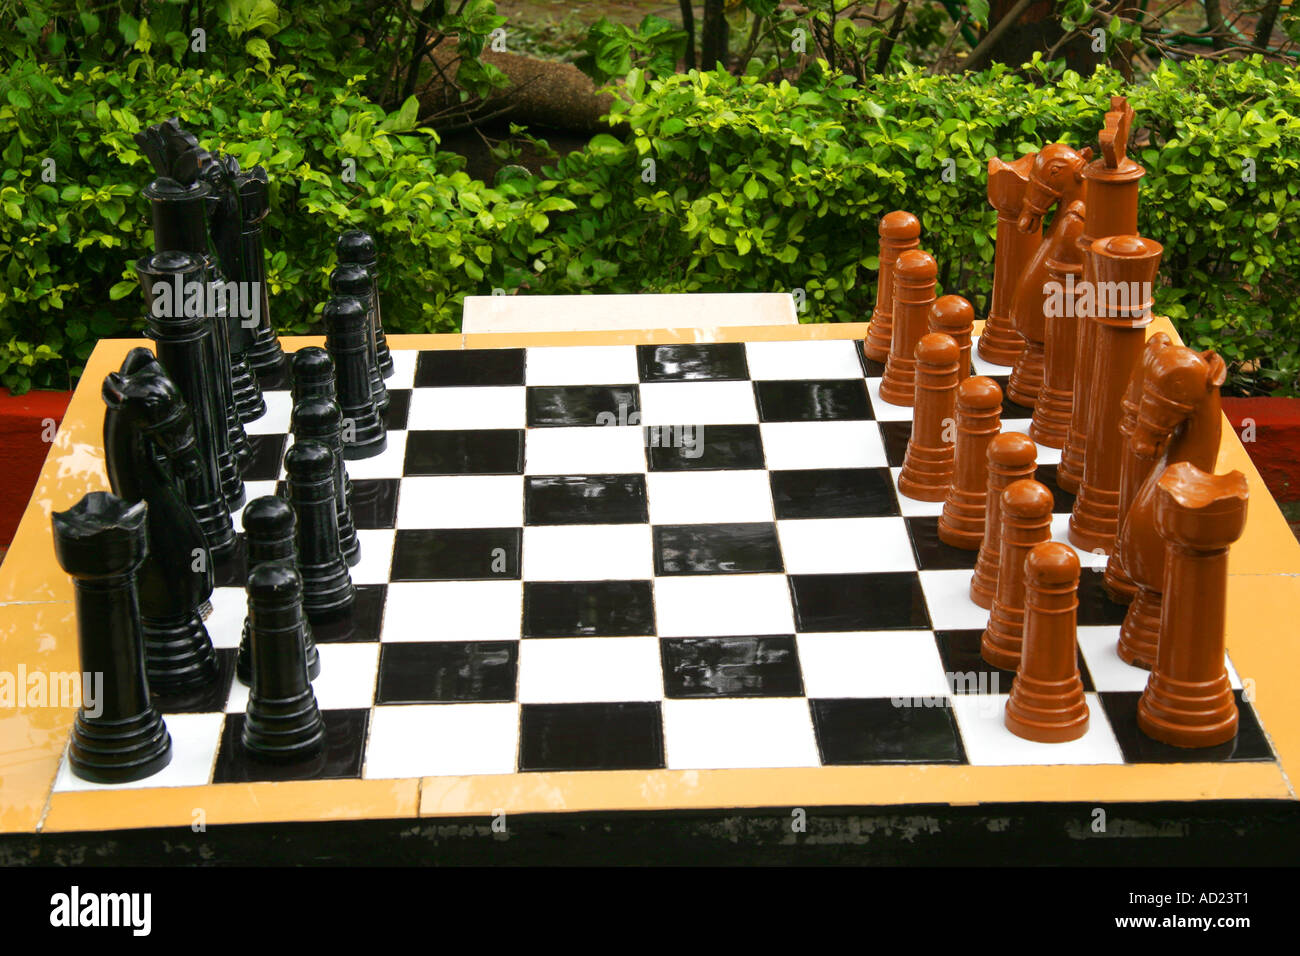 Ssk72766 game sports chess board with playing pieces the chess ssk72766 game sports chess board with playing pieces the chess board is made of ceramic tiles and pieces of wood india dailygadgetfo Choice Image